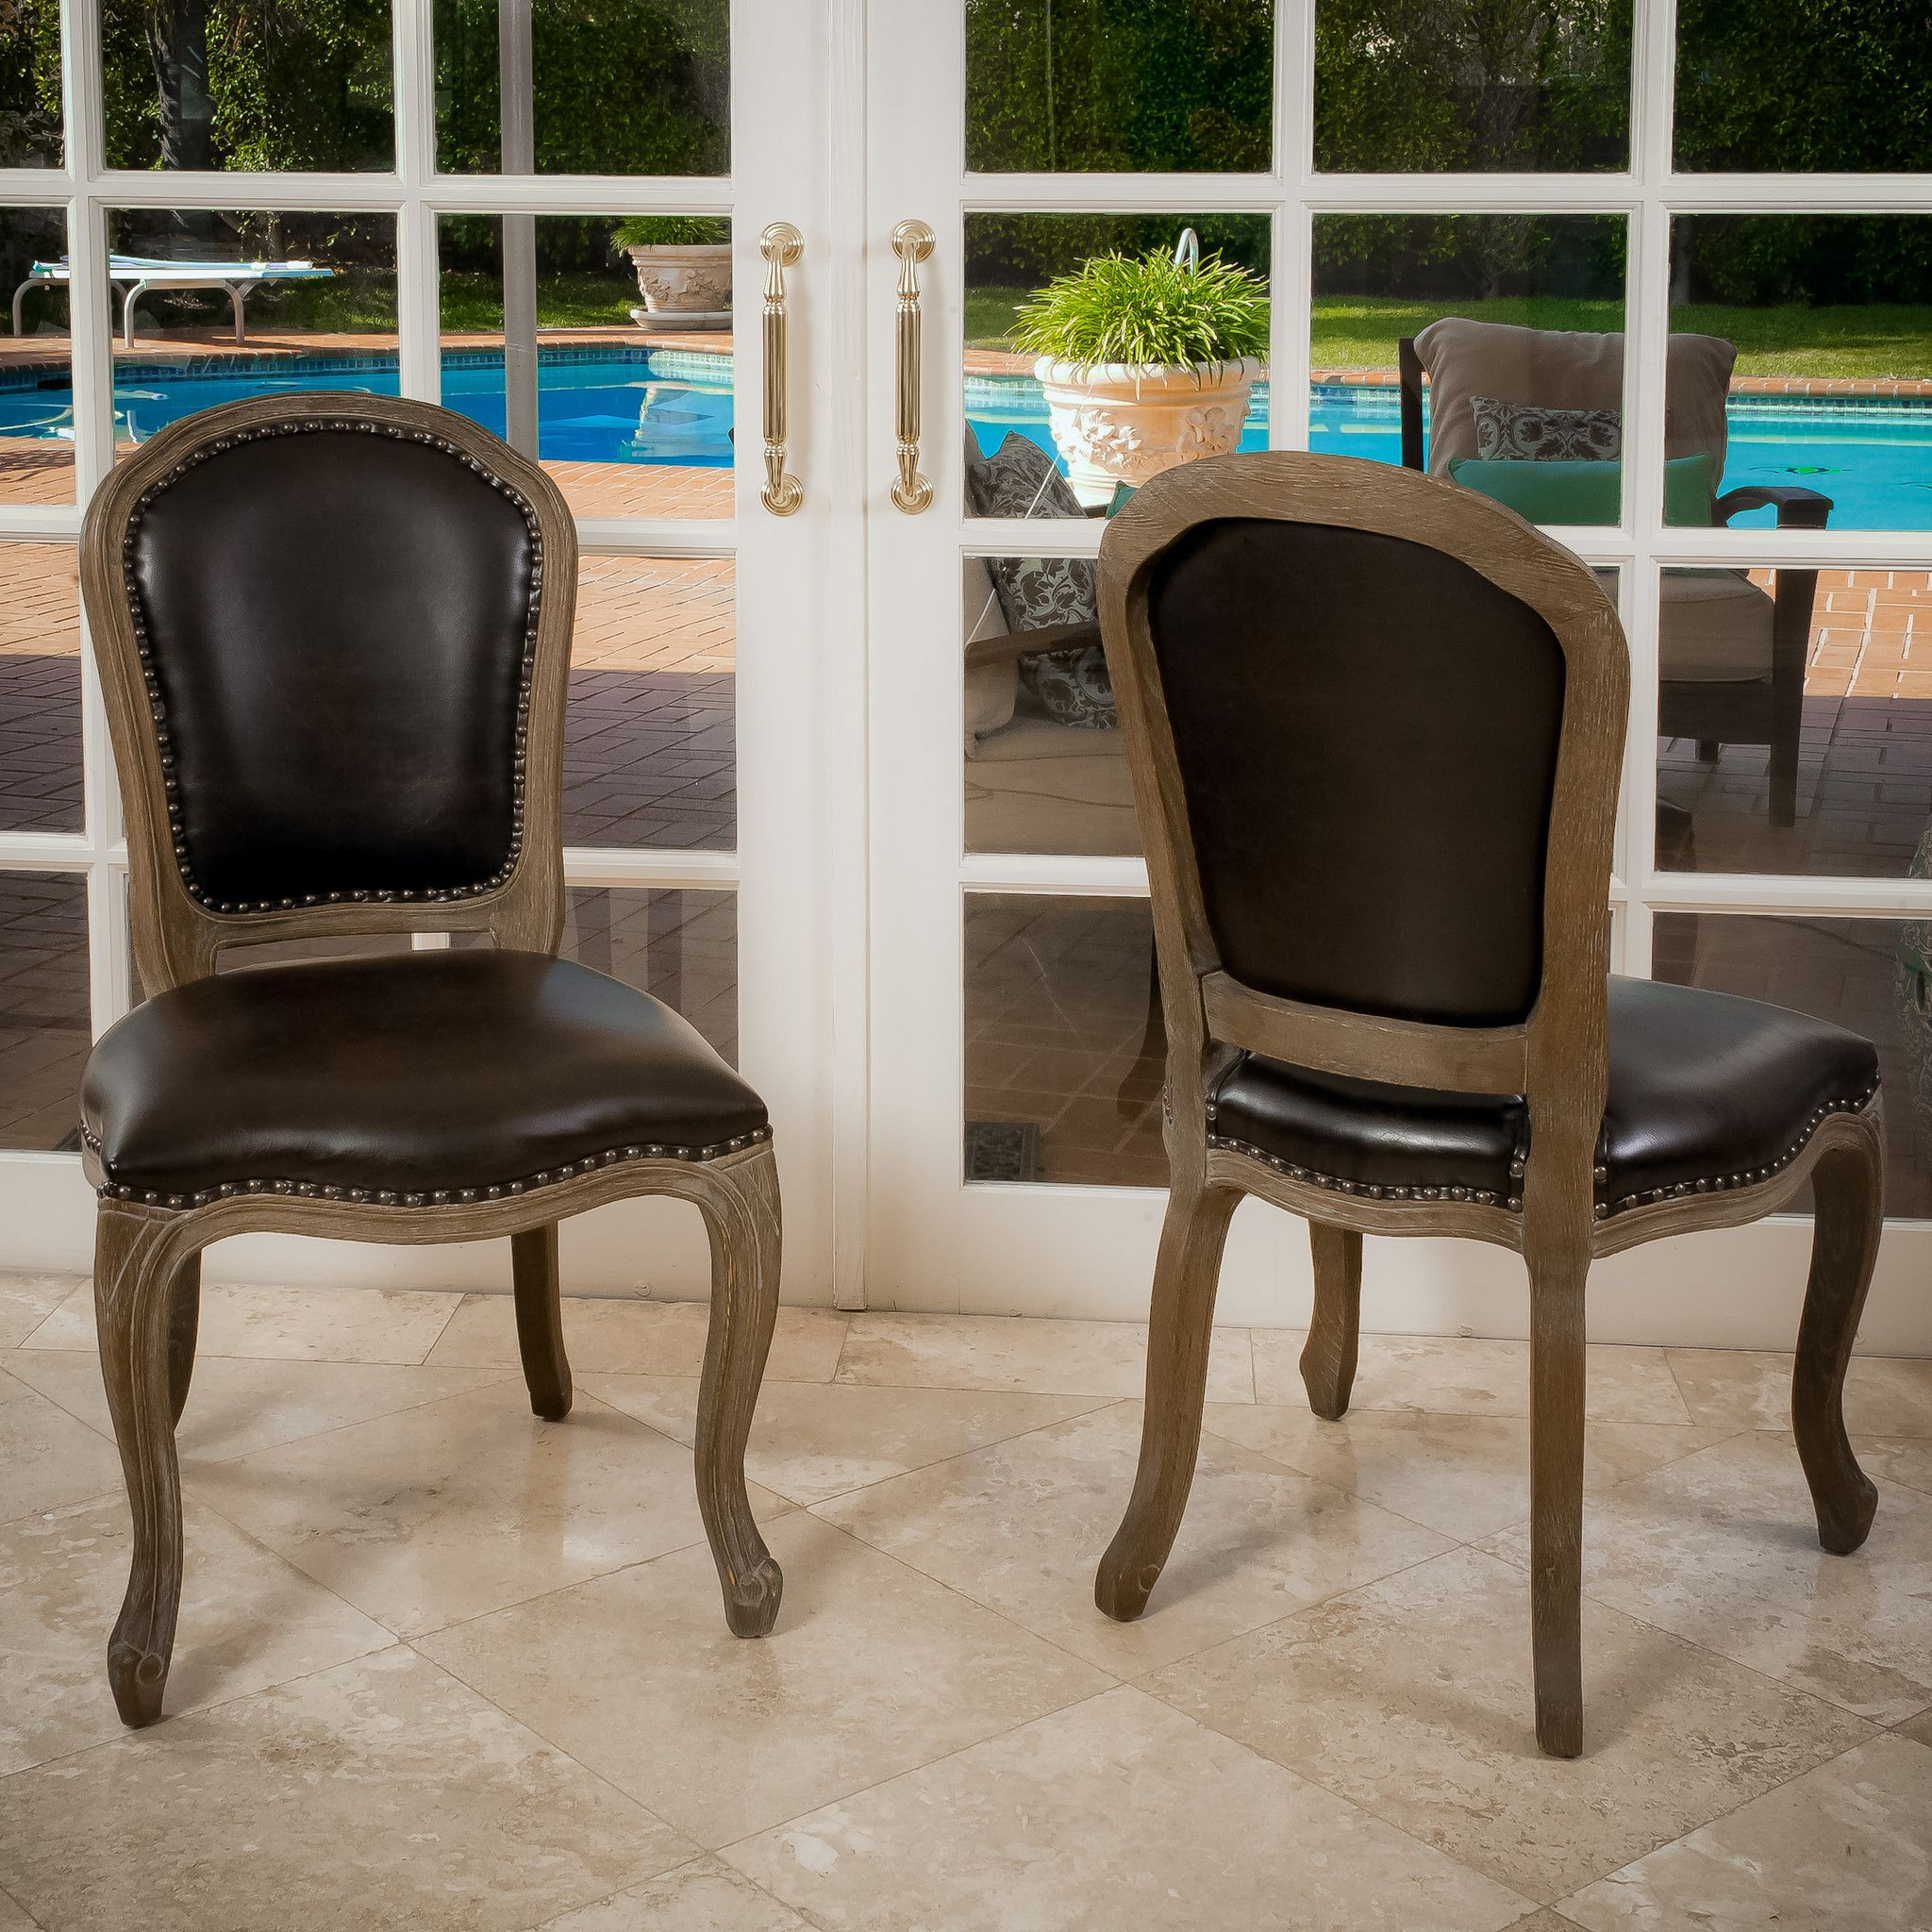 Queen Ann Leather Weathered Wood Dining Chairs Set Of 2